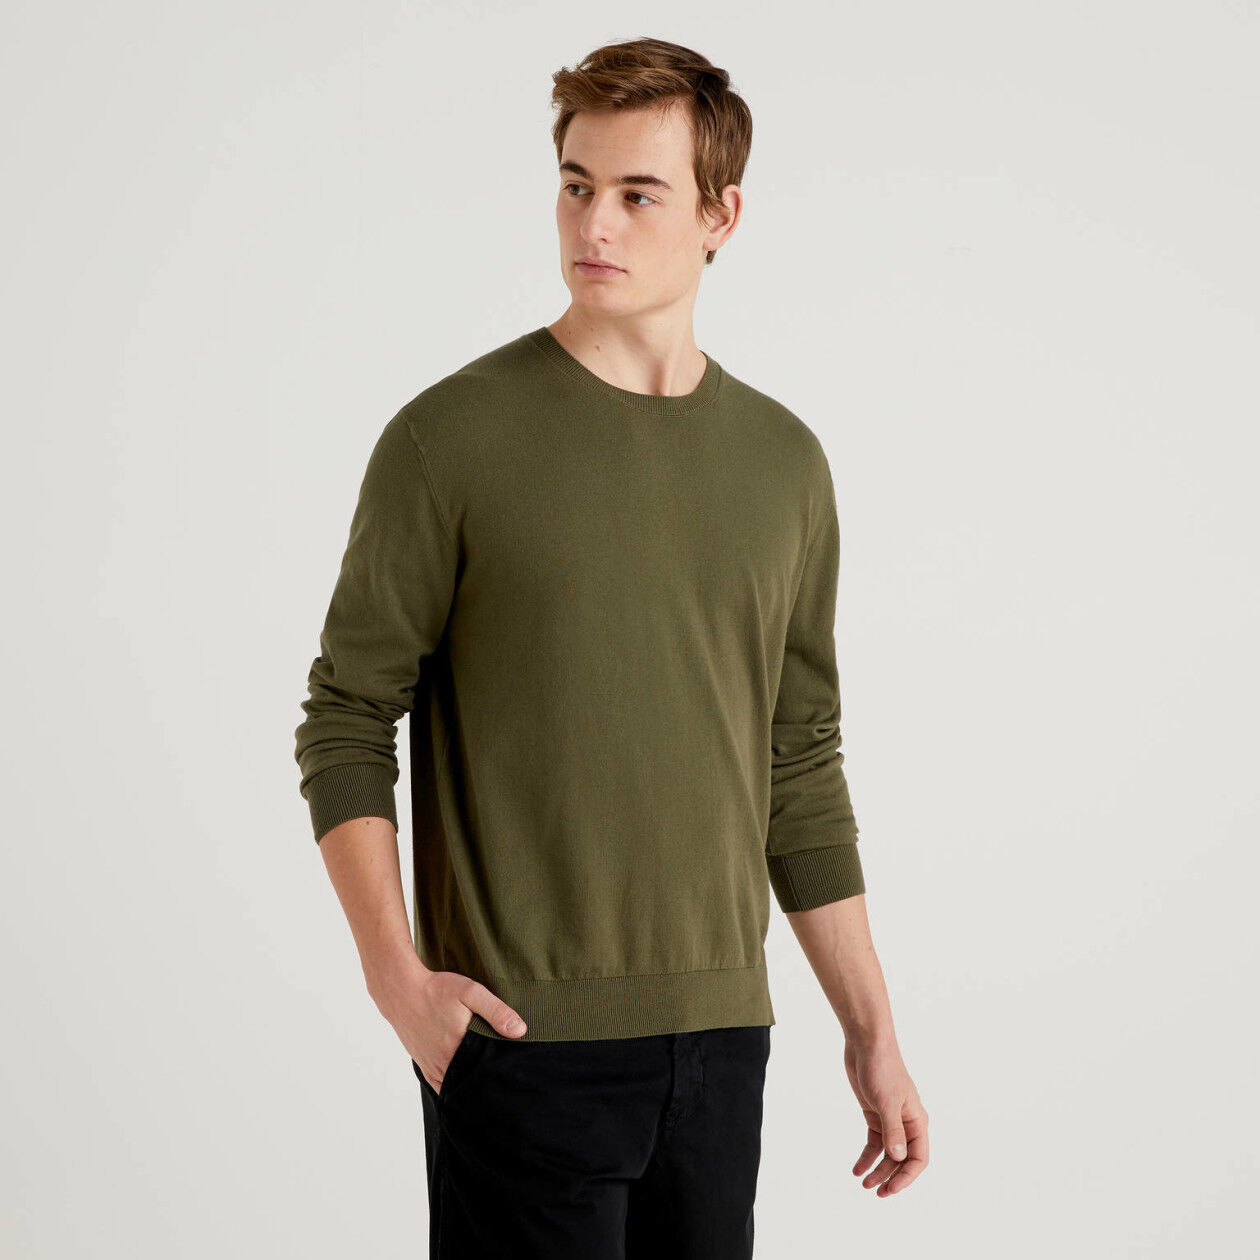 Crew neck sweater in cotton blend